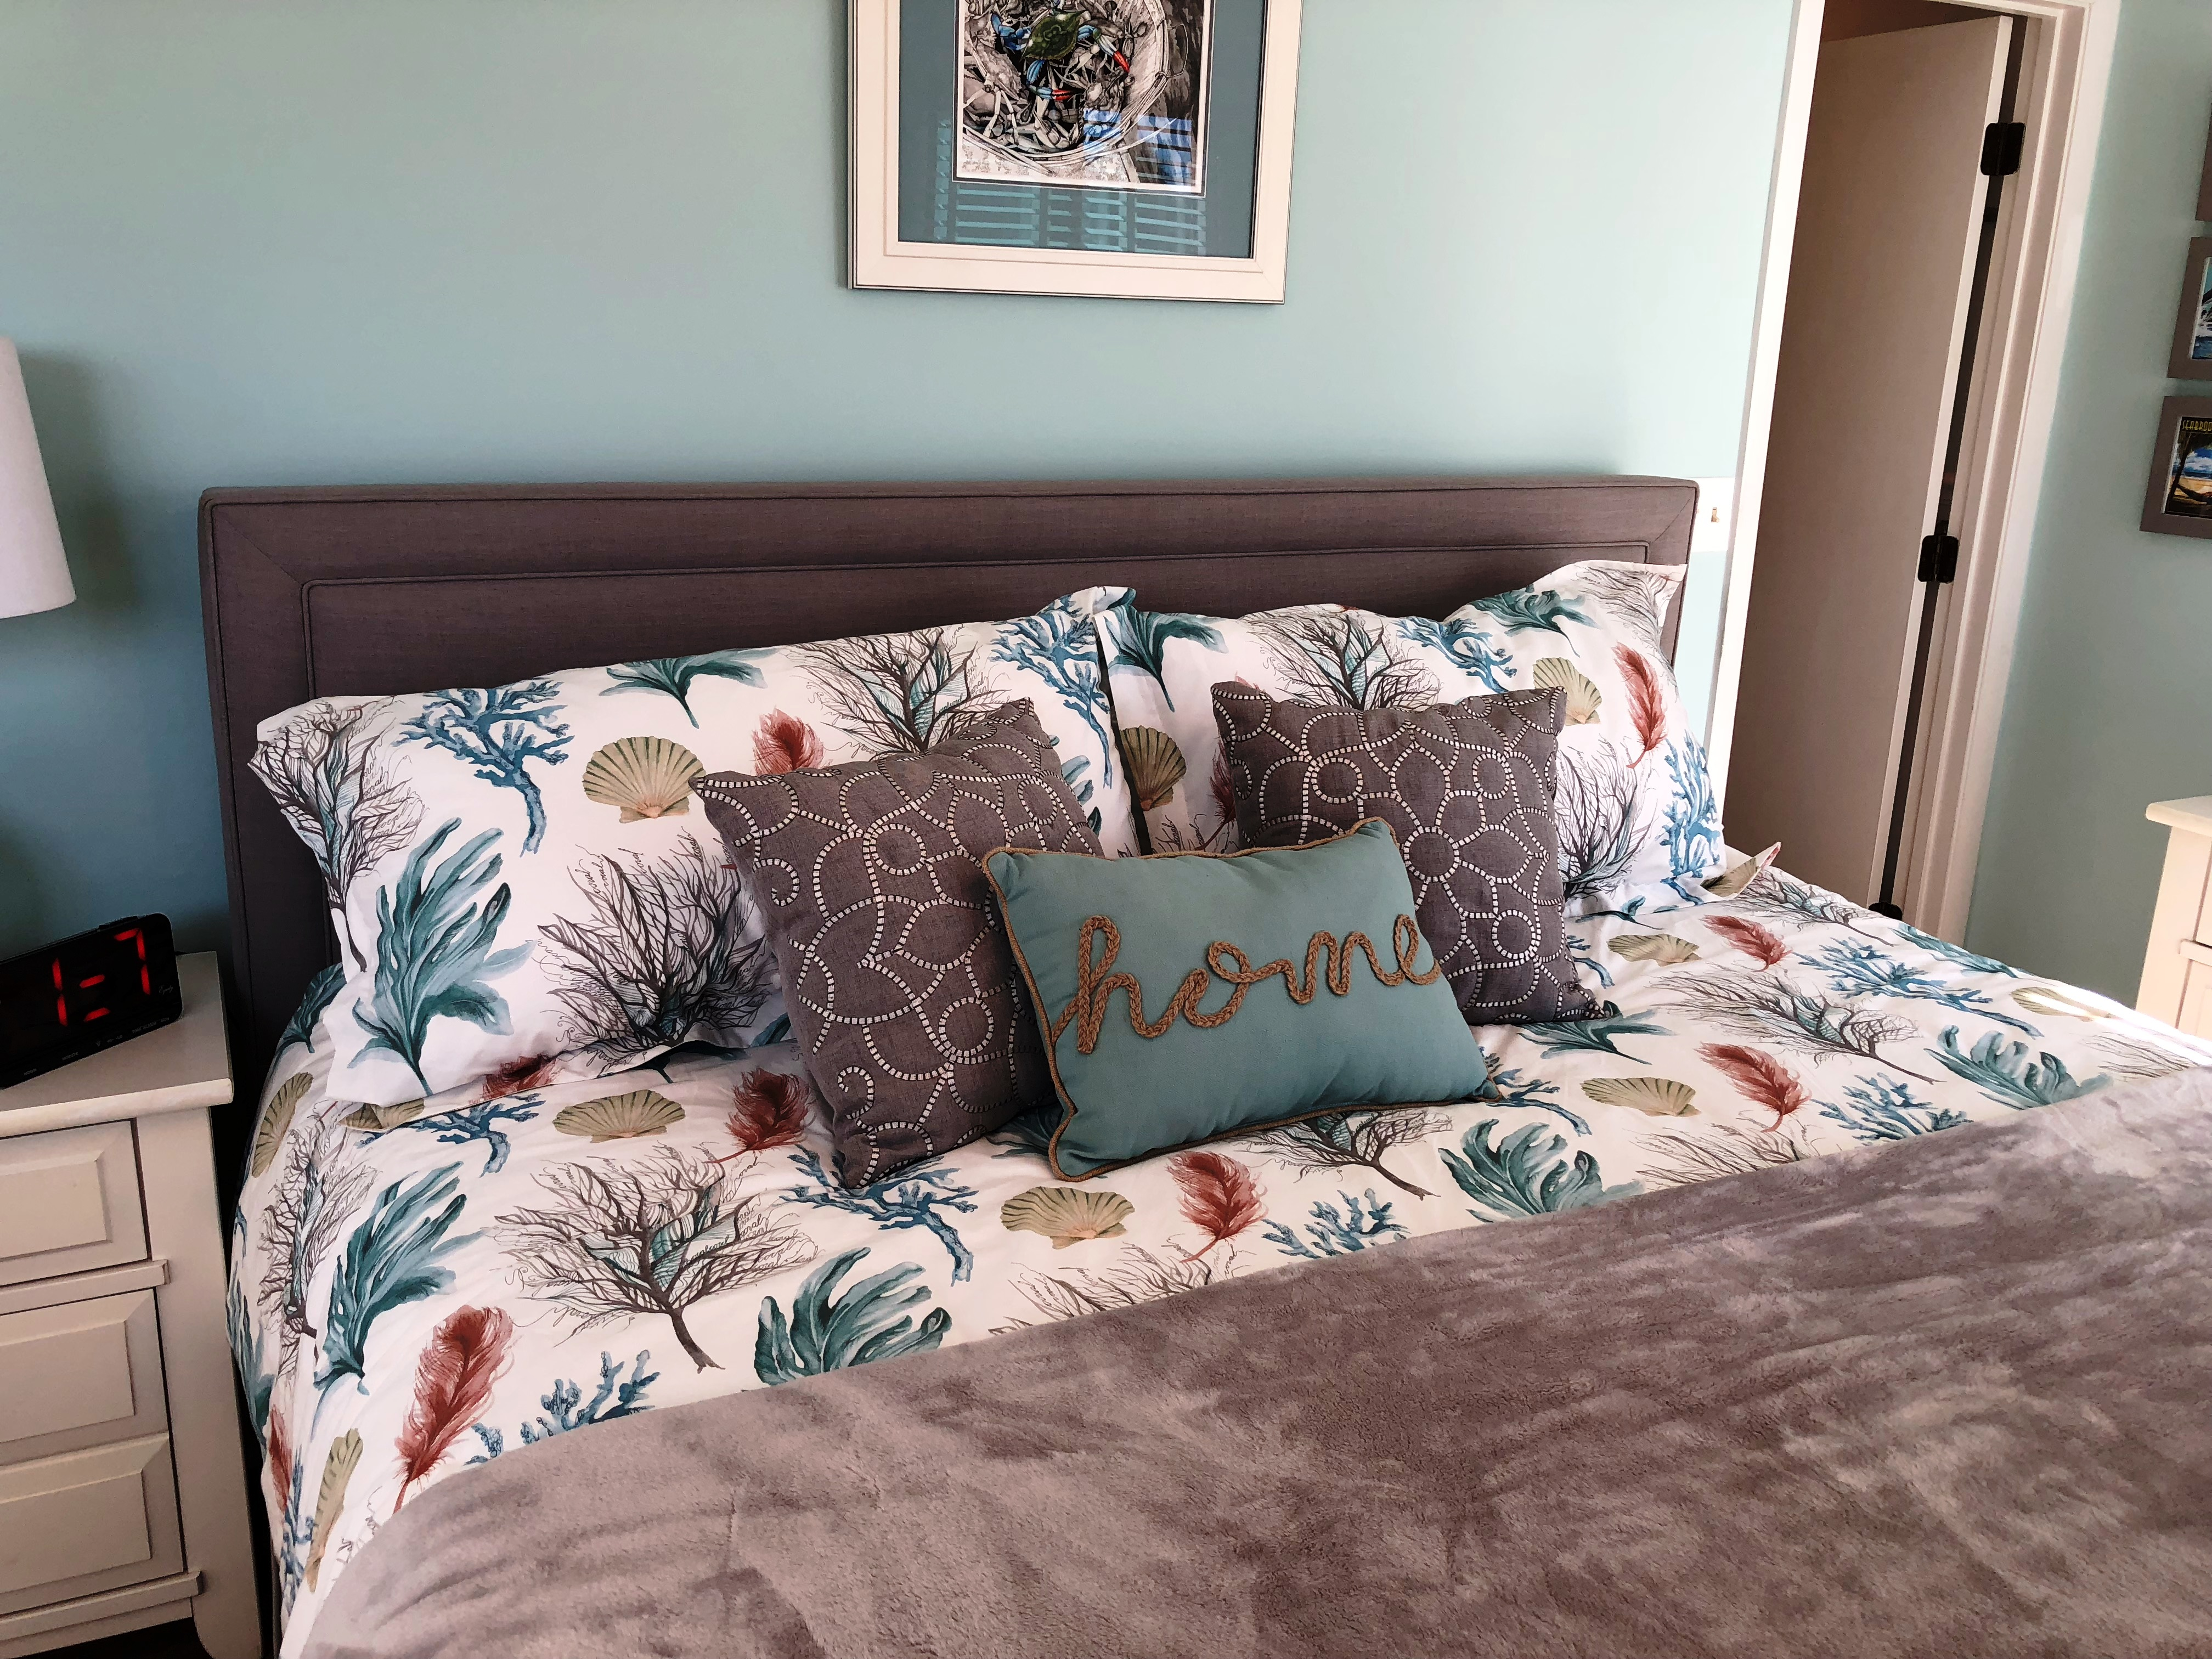 The master bedroom has a king size bed and pretty seaside decor.